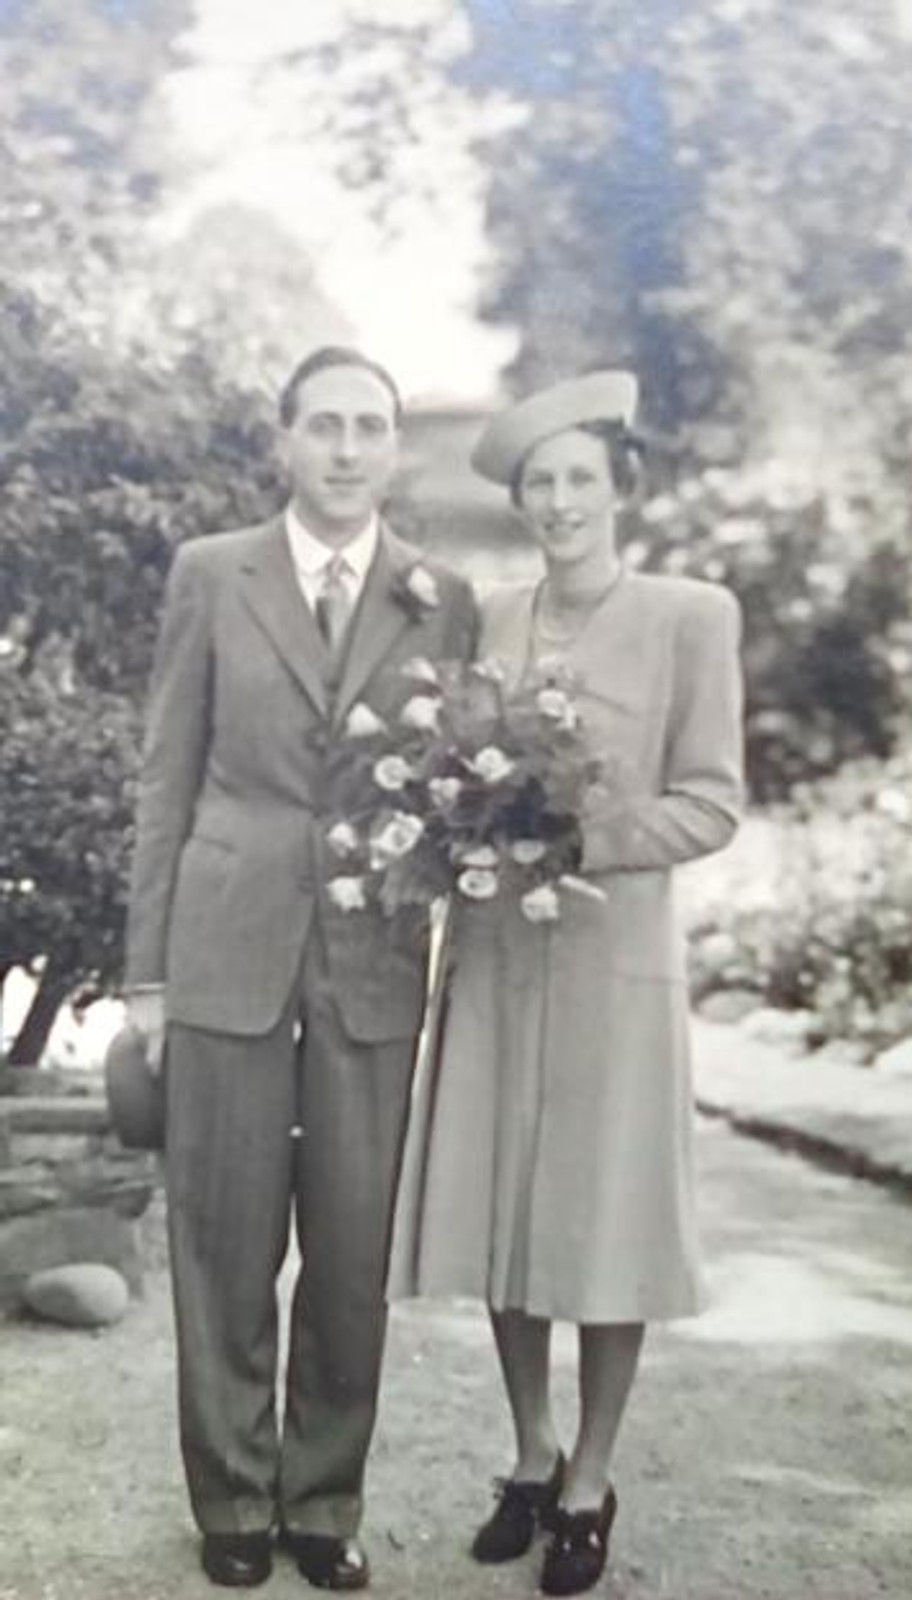 Margaret and me on our wedding day, 1940.